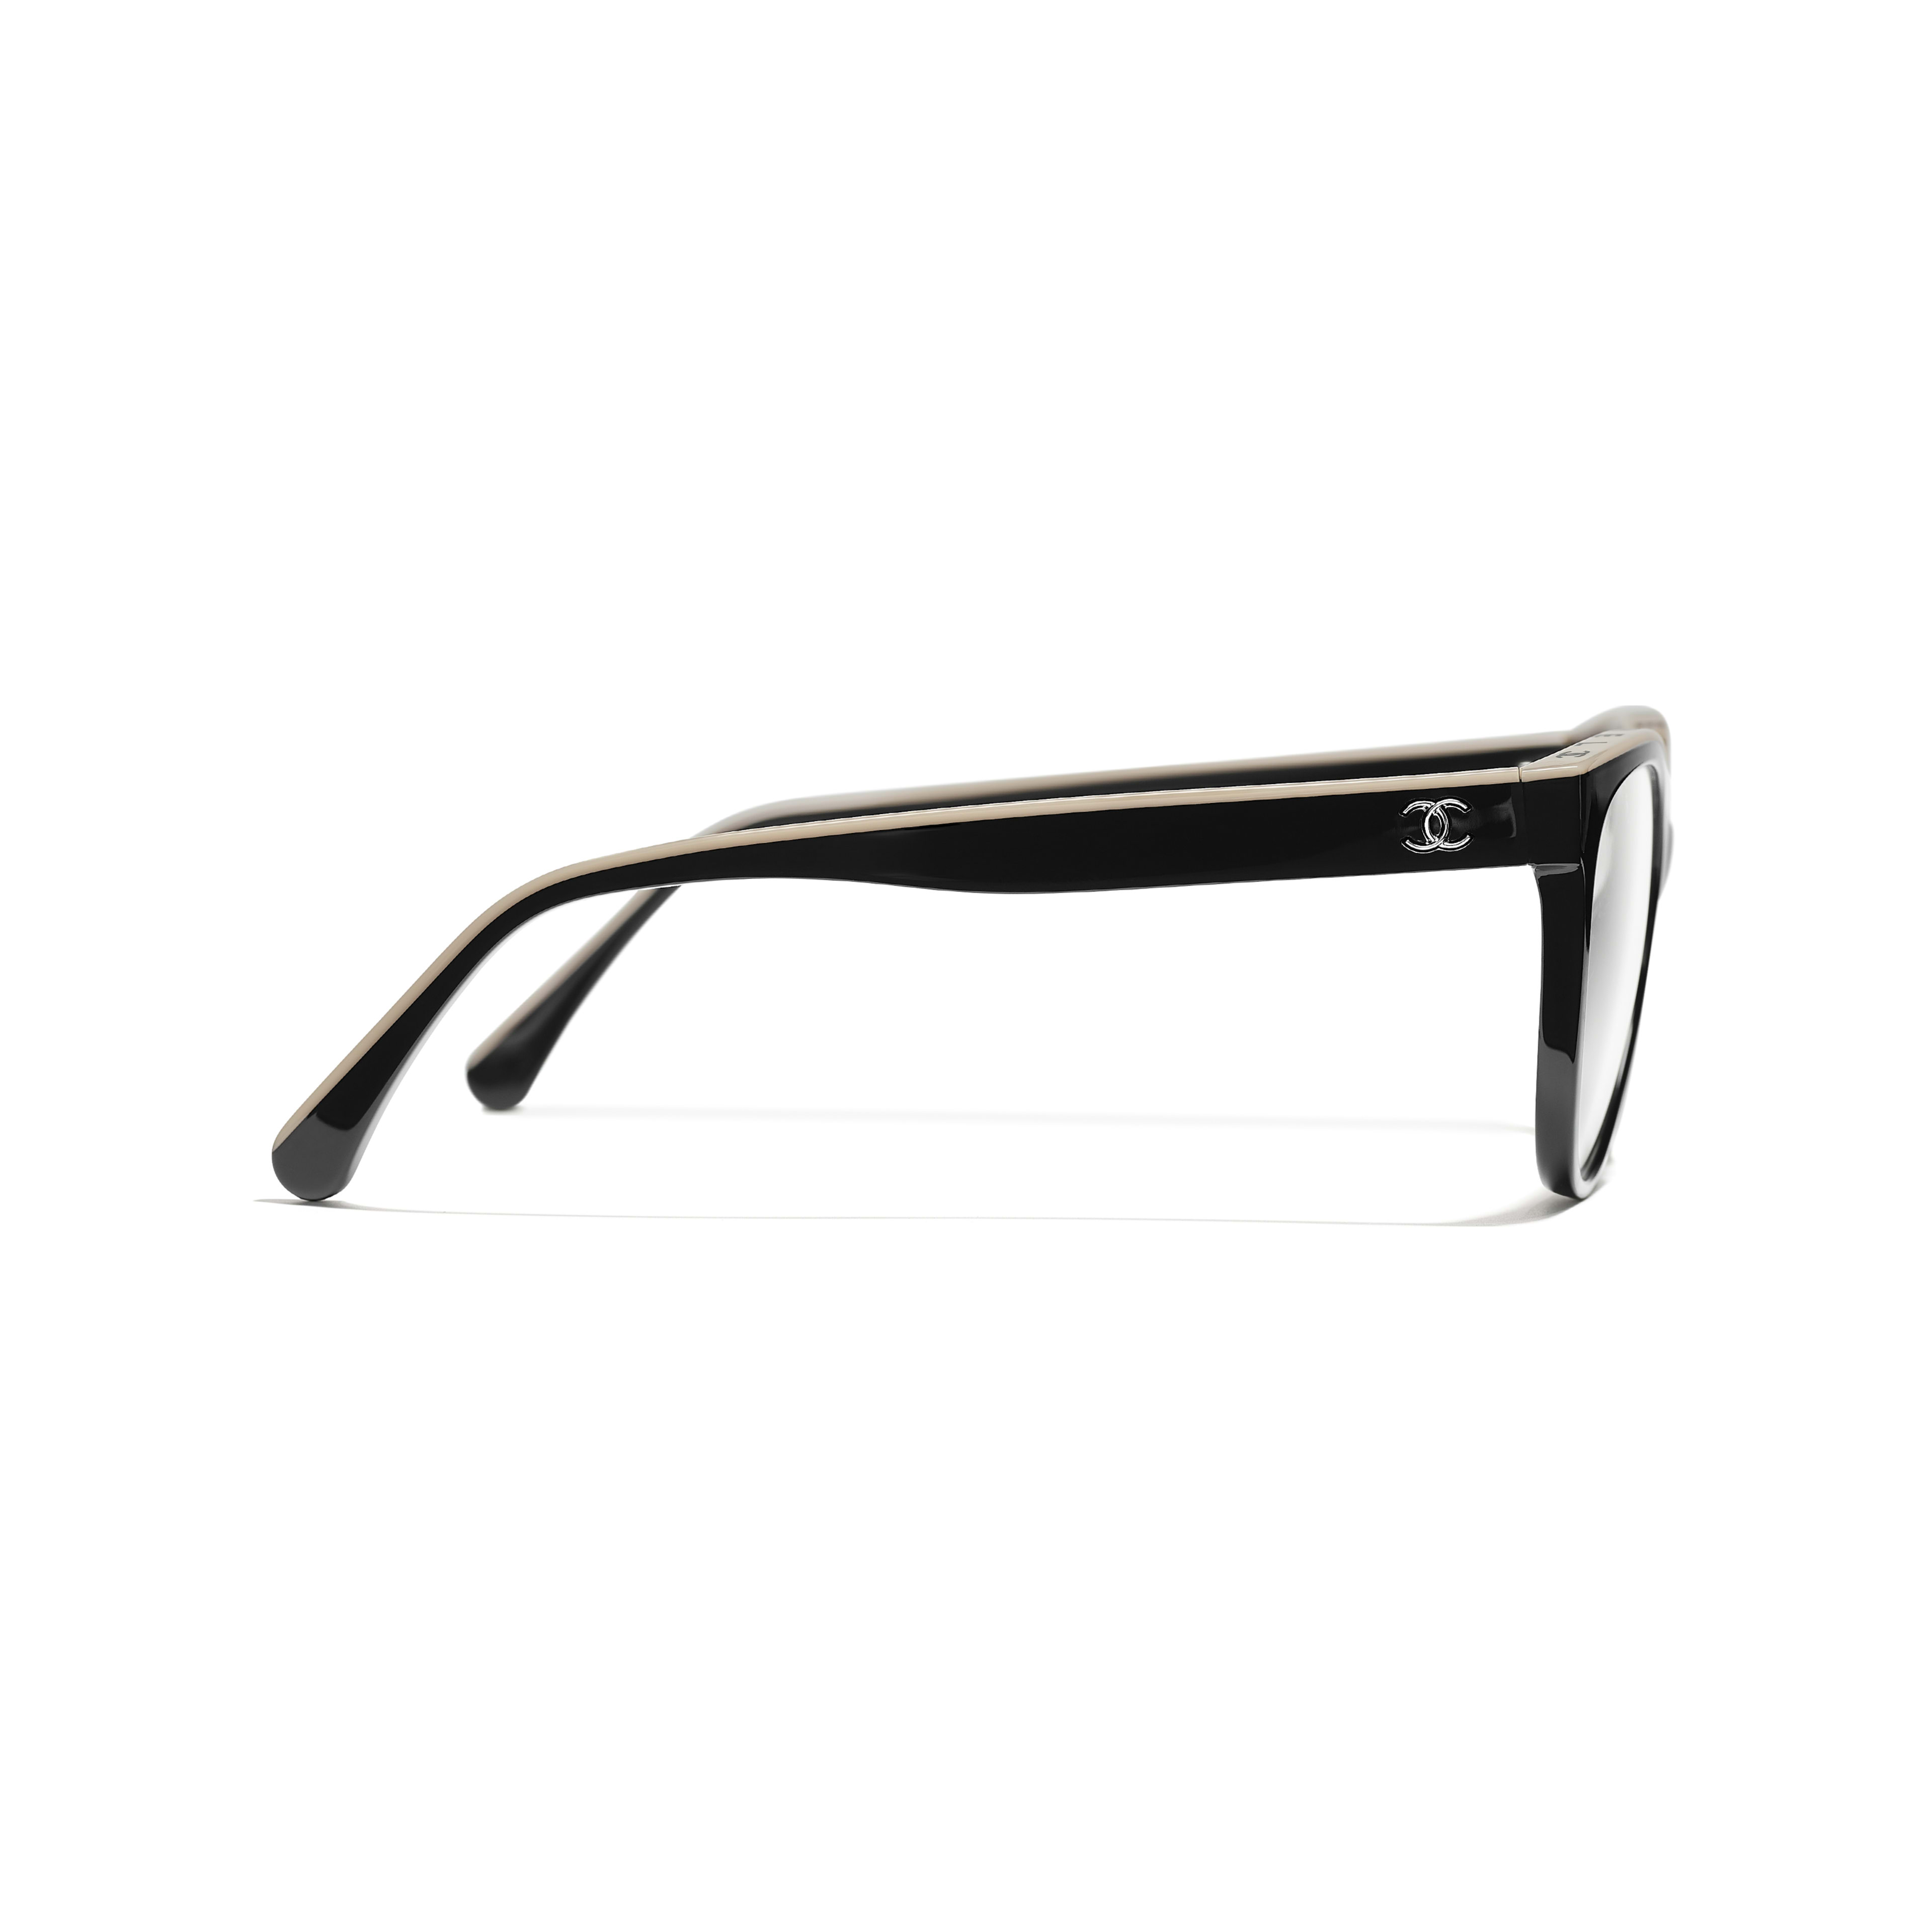 Butterfly Eyeglasses - Black & Beige - Acetate - Other view - see full sized version